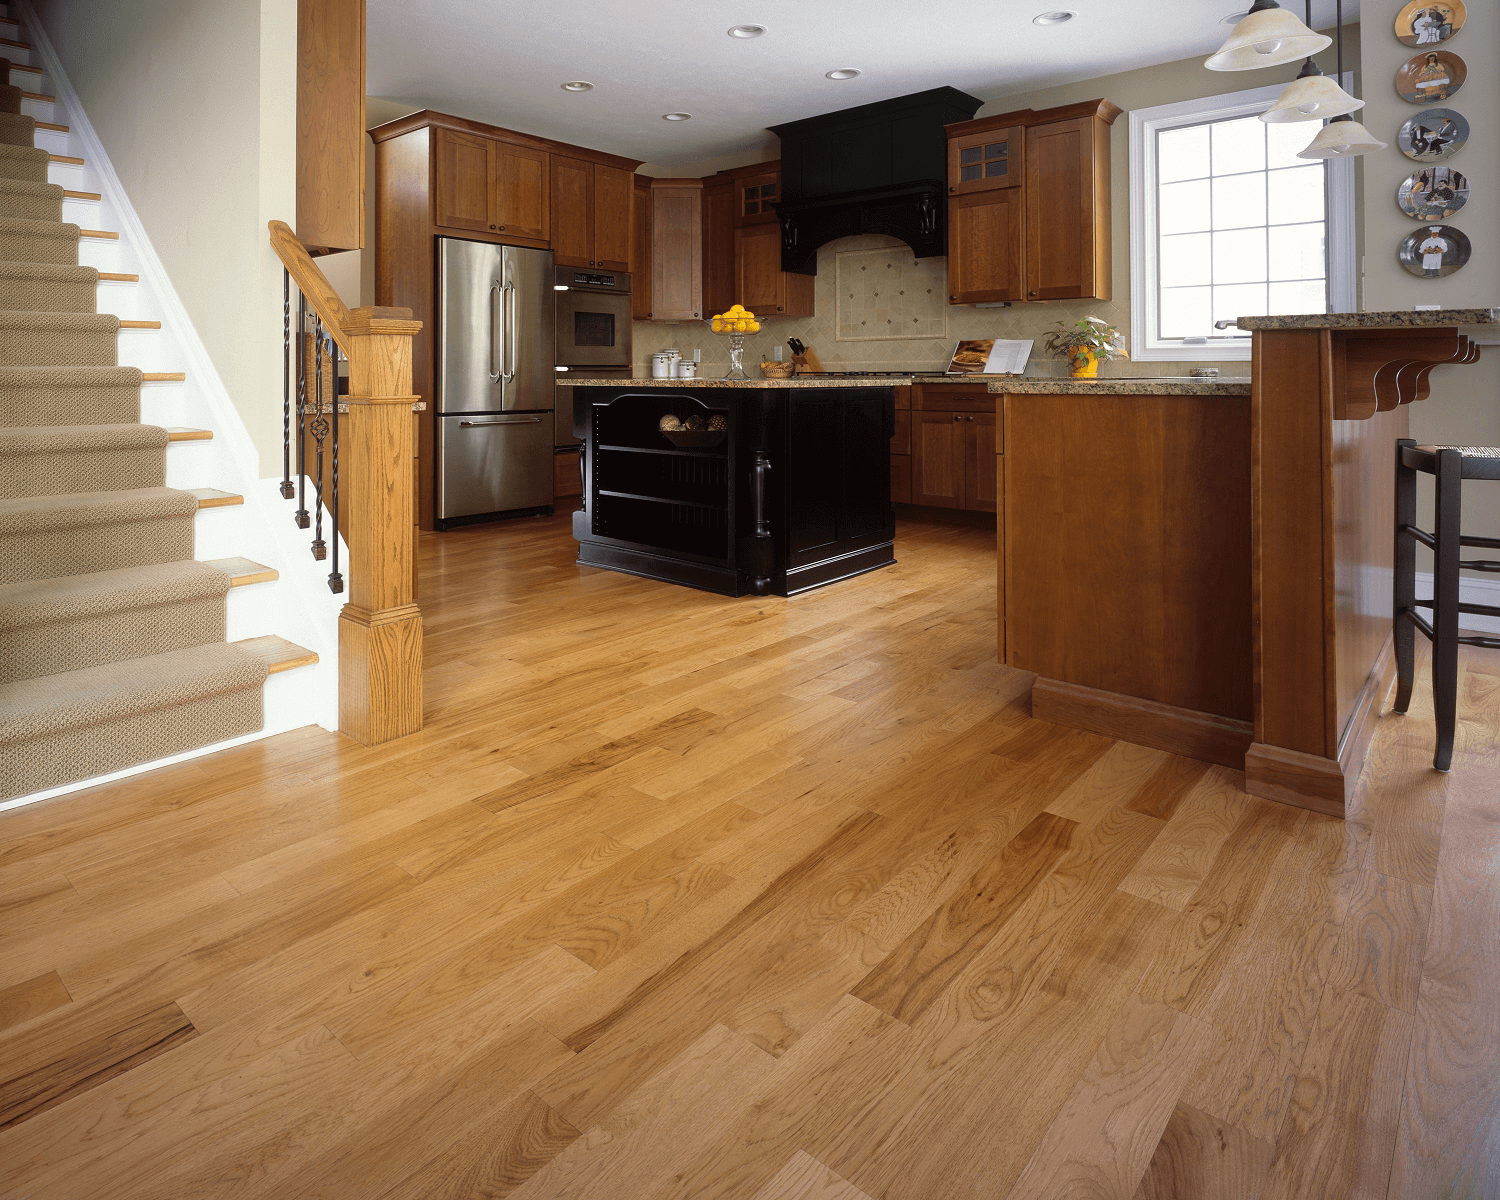 Varnishing wood floors without sanding tips for How to clean a garage floor without water